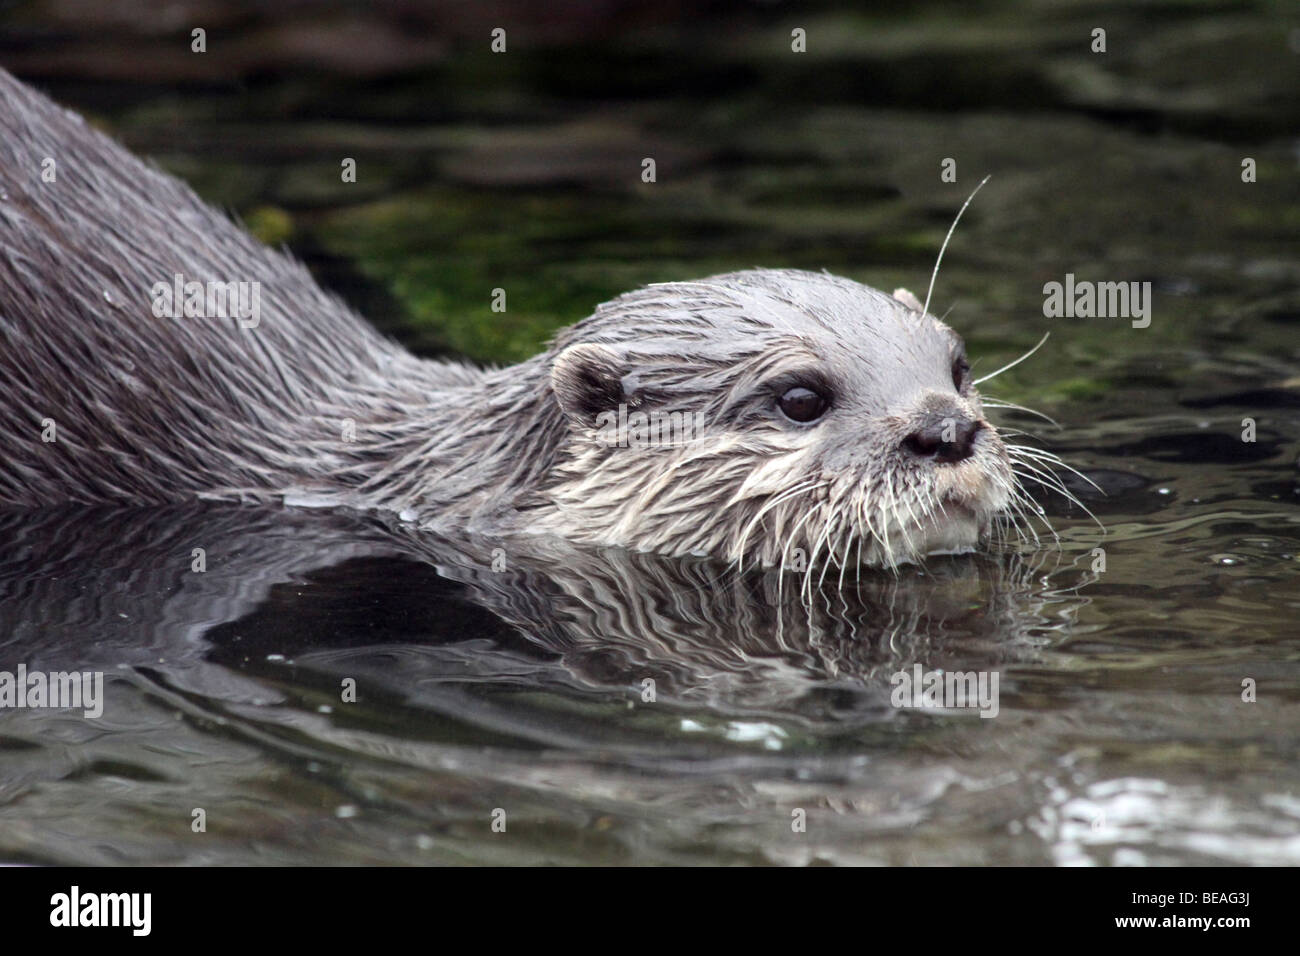 Oriental Small-clawed Otter Aonyx cinerea Swimming Taken At Martin Mere WWT, Lancashire UK - Stock Image